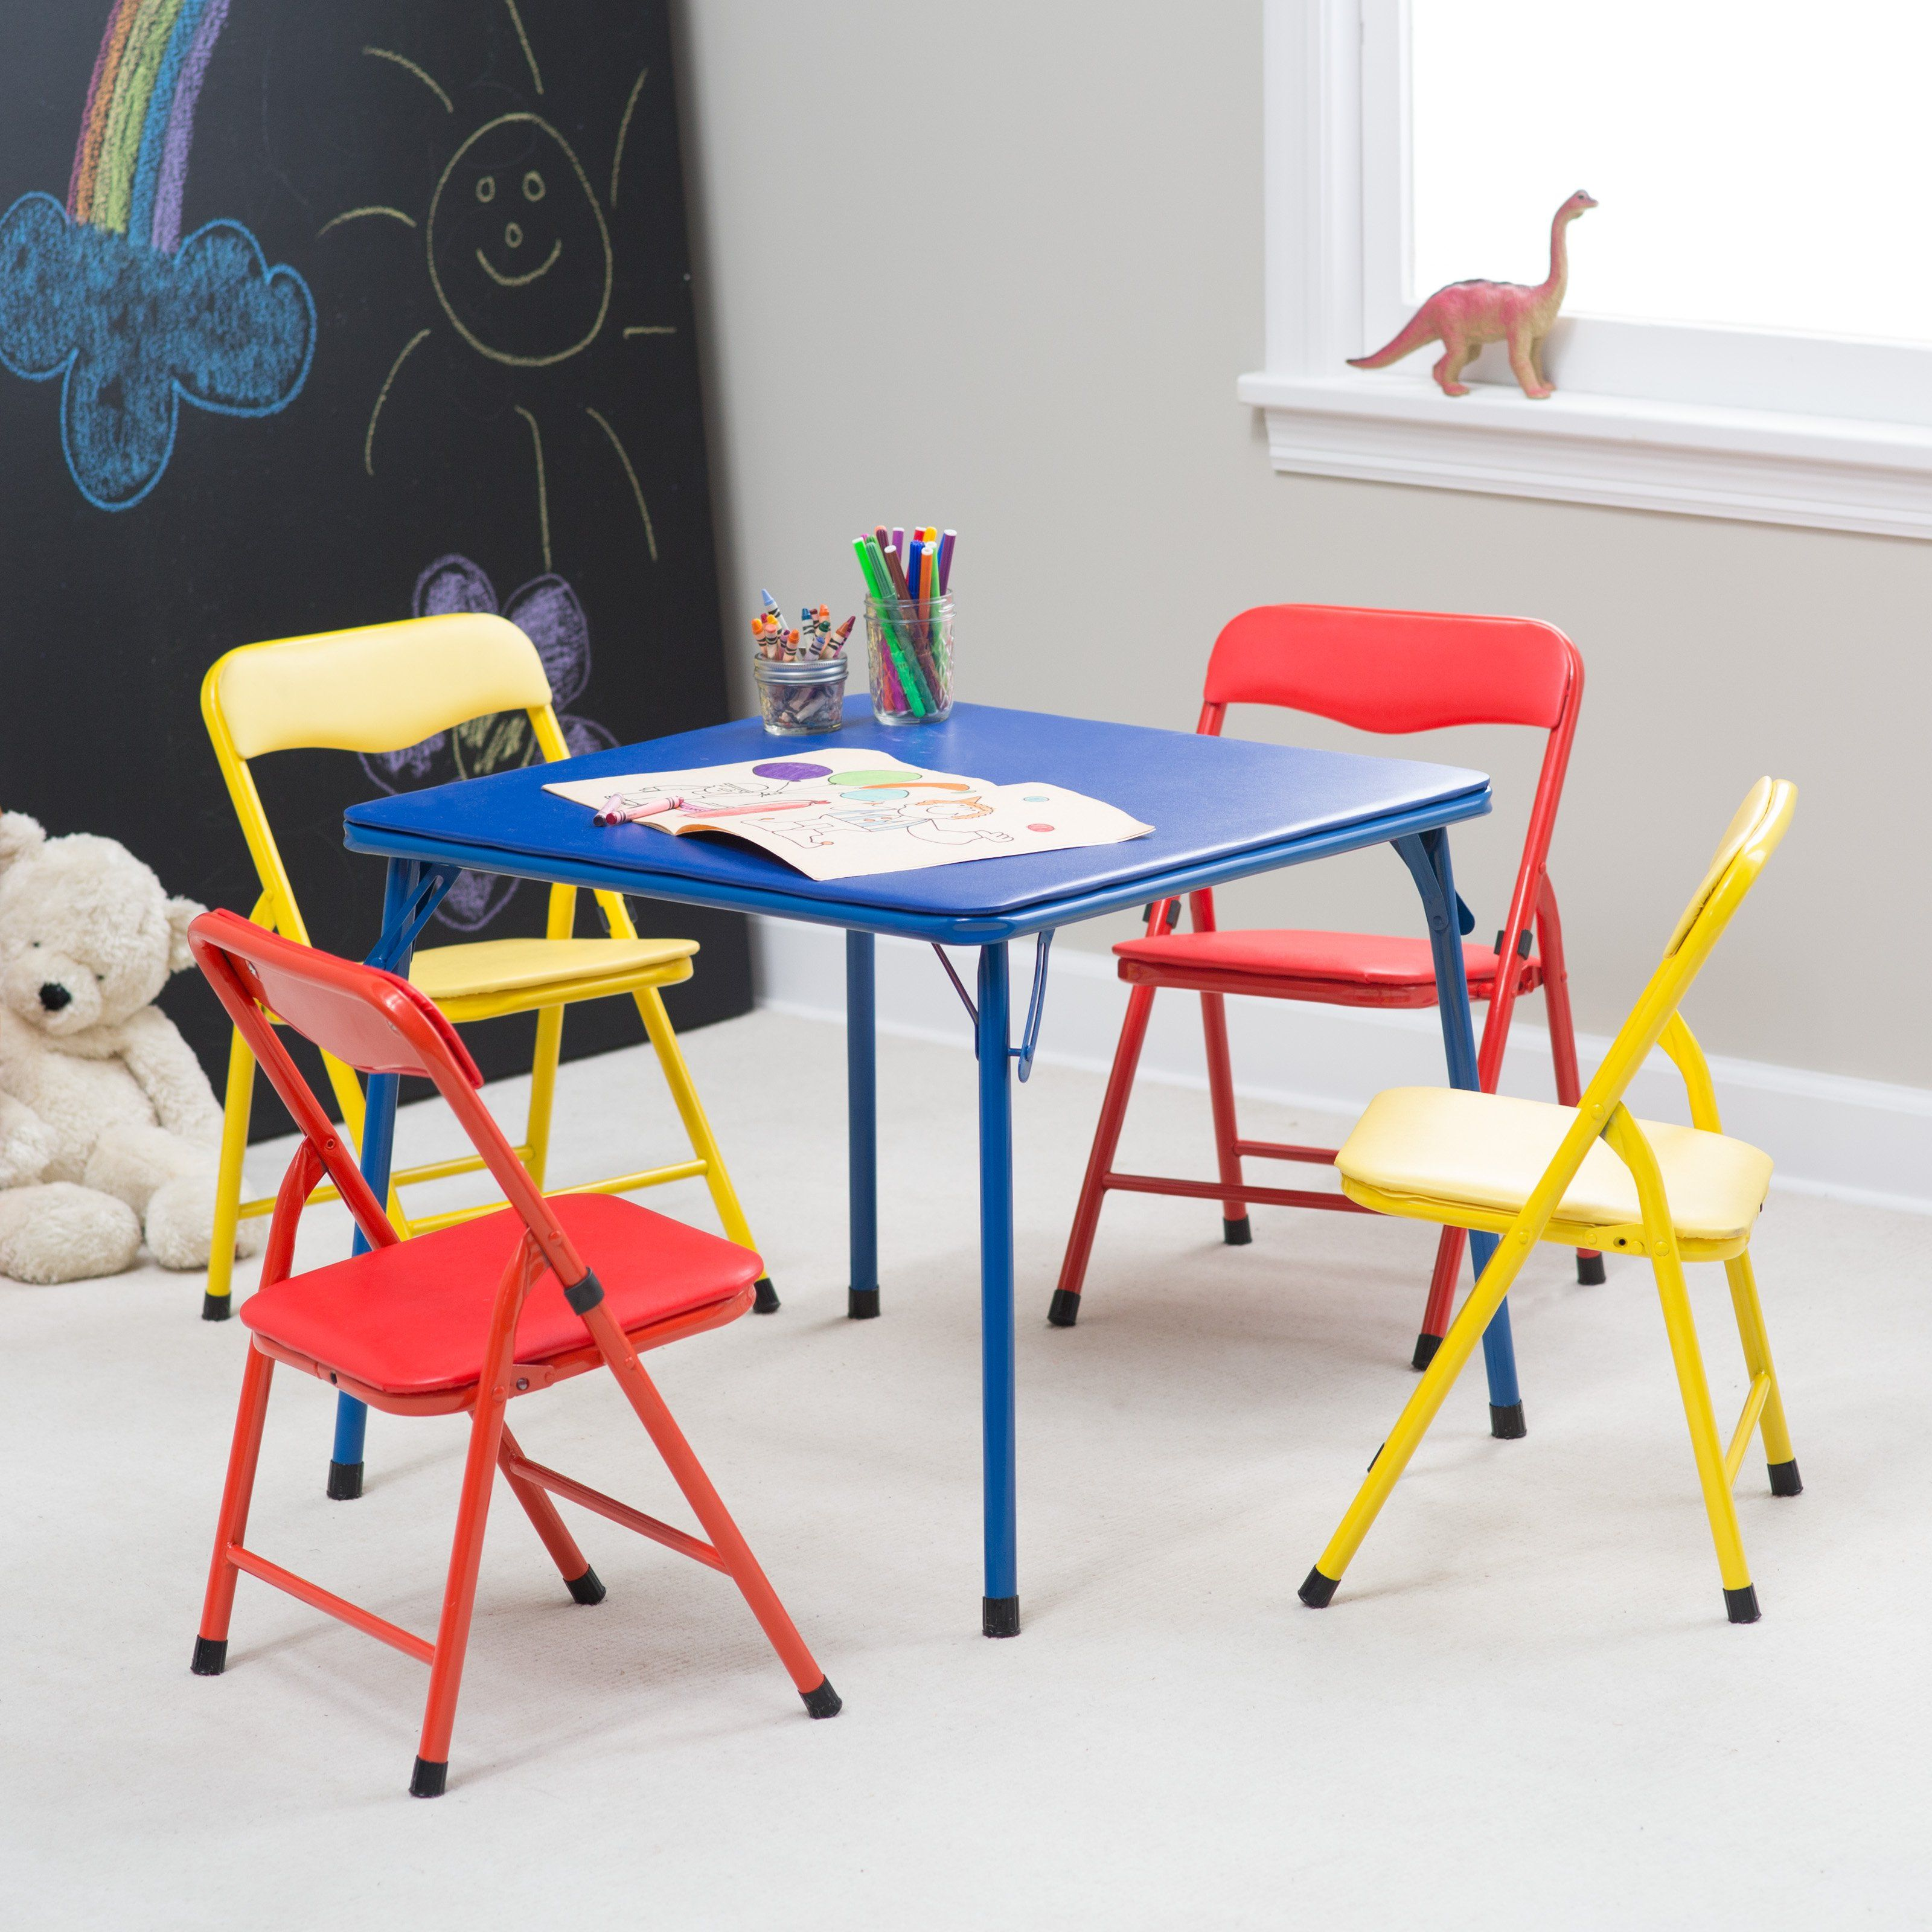 How To Buy A Folding Table And Chairs Set Designalls In 2020 Childrens Folding Table Toddler Folding Table Kids Folding Chair